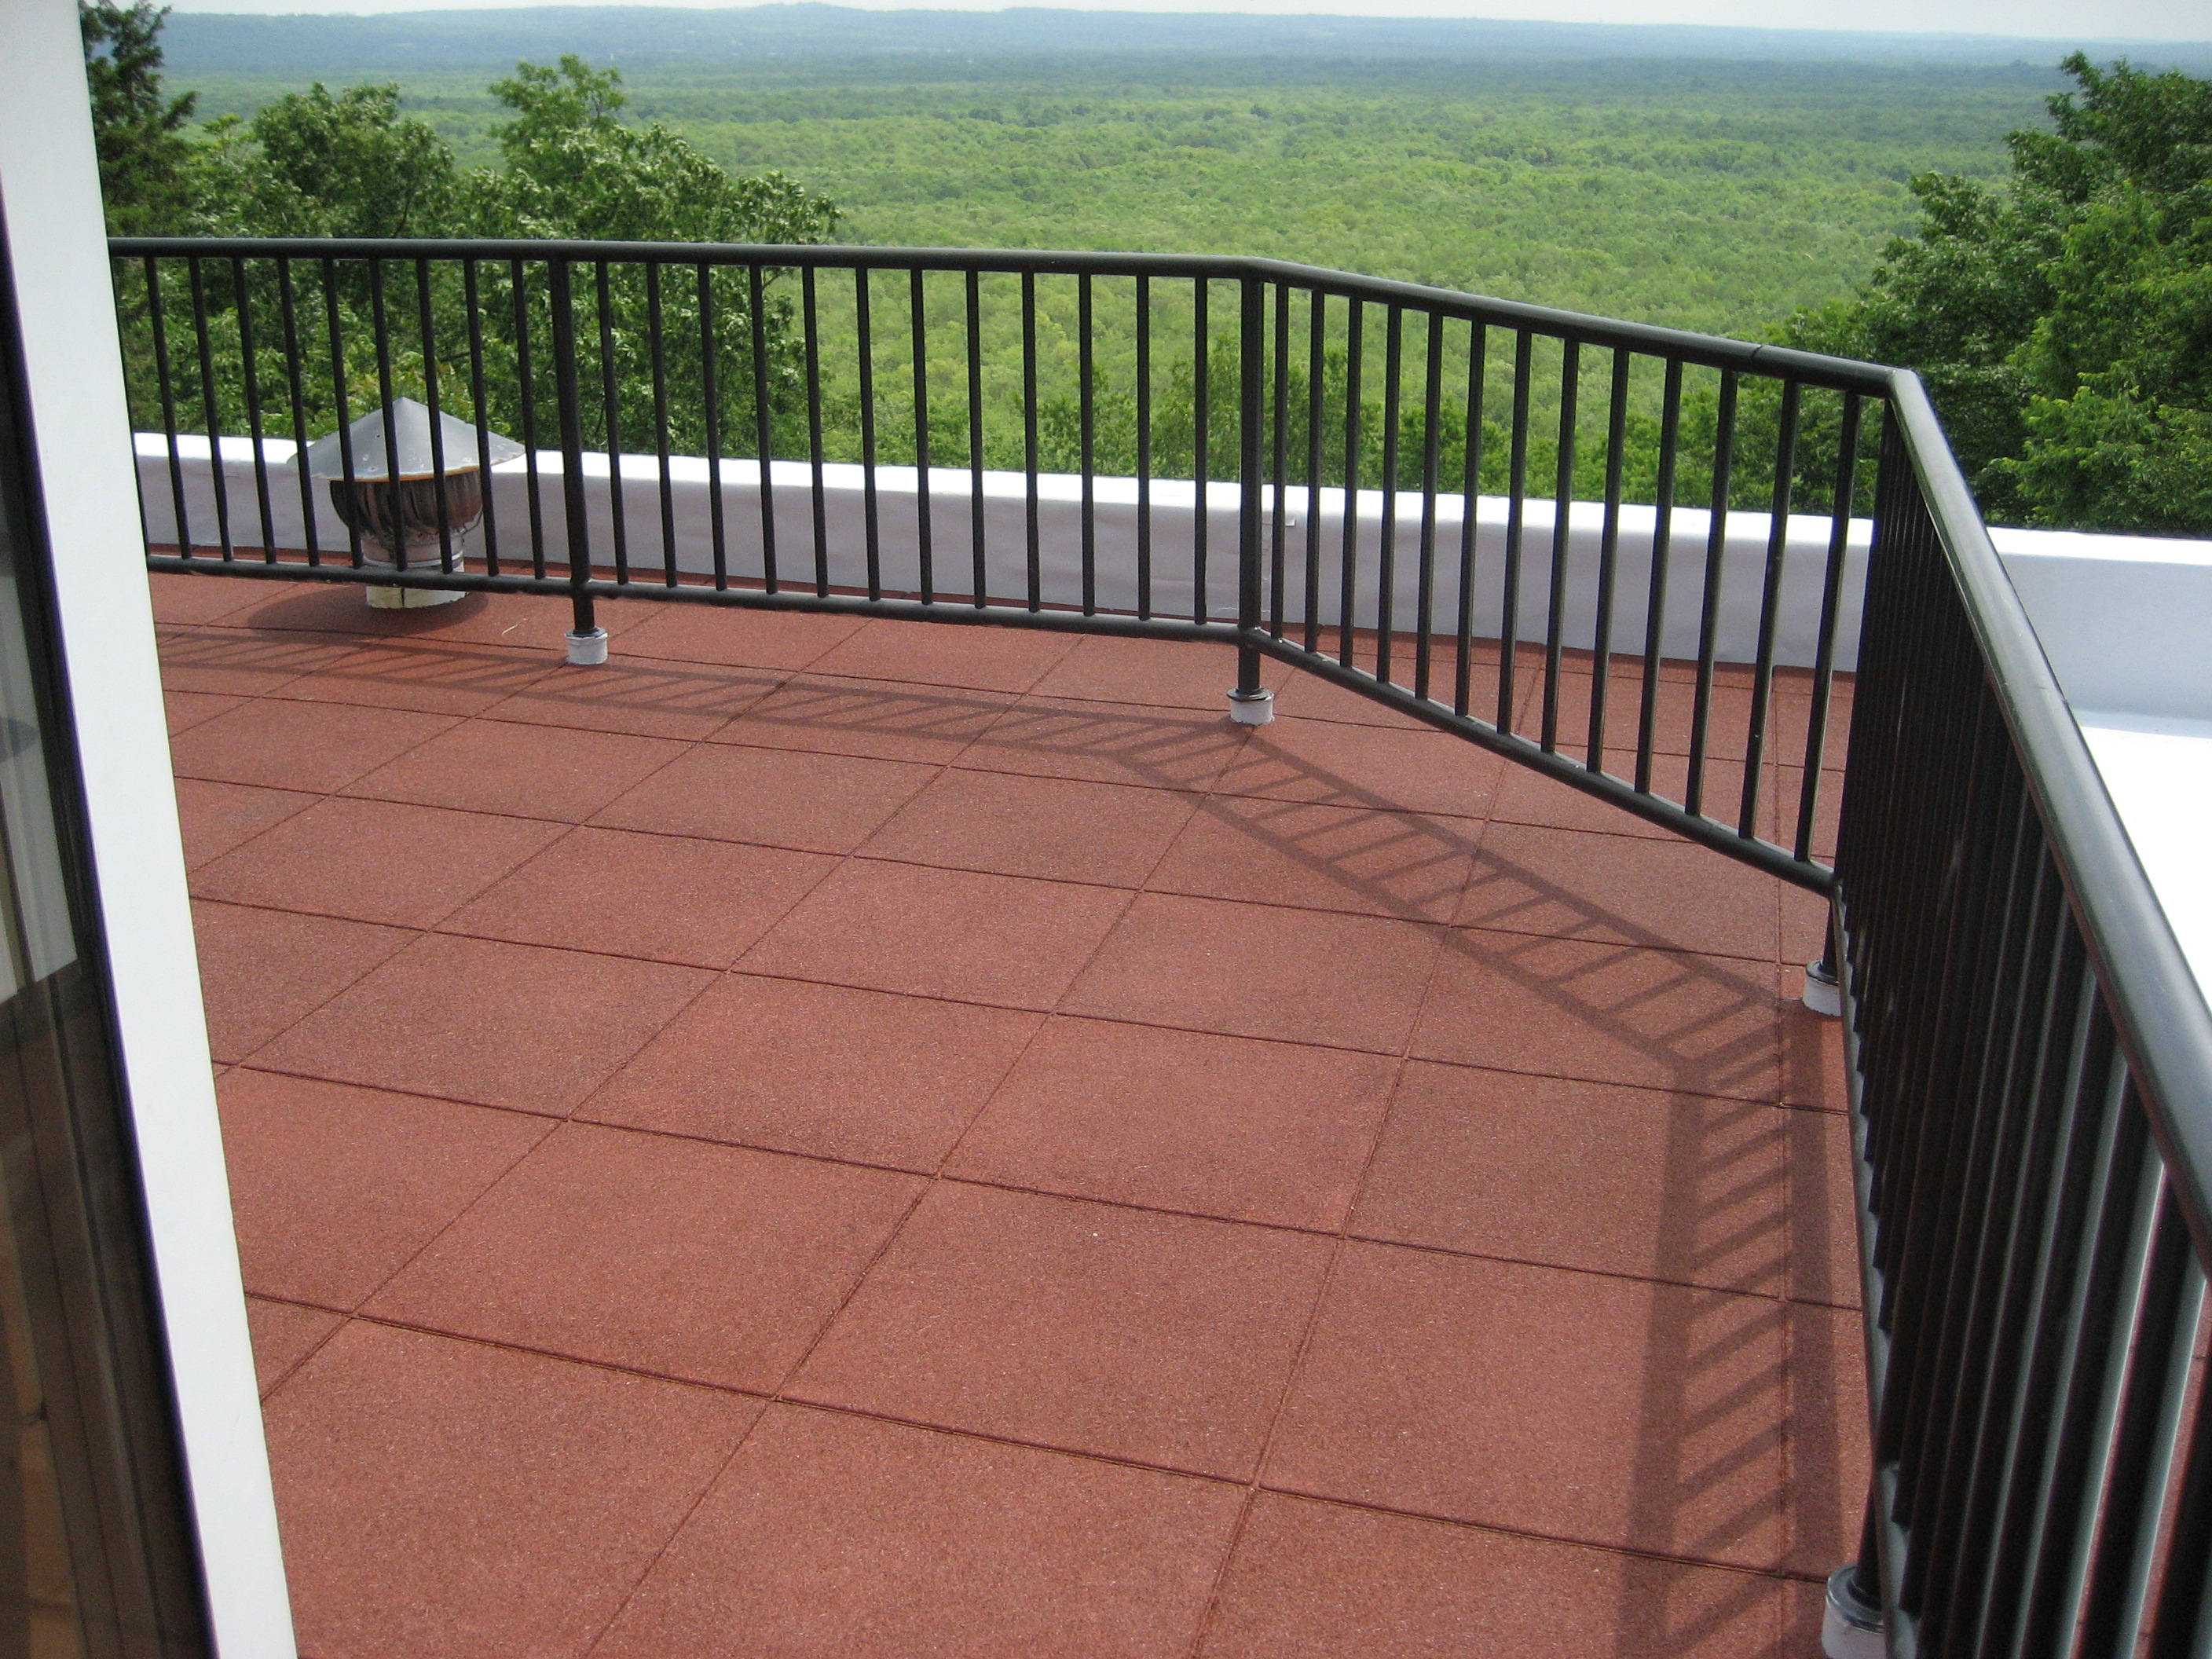 Rooftop Patio using in a rural setting using Pigmented Terra Cotta RED